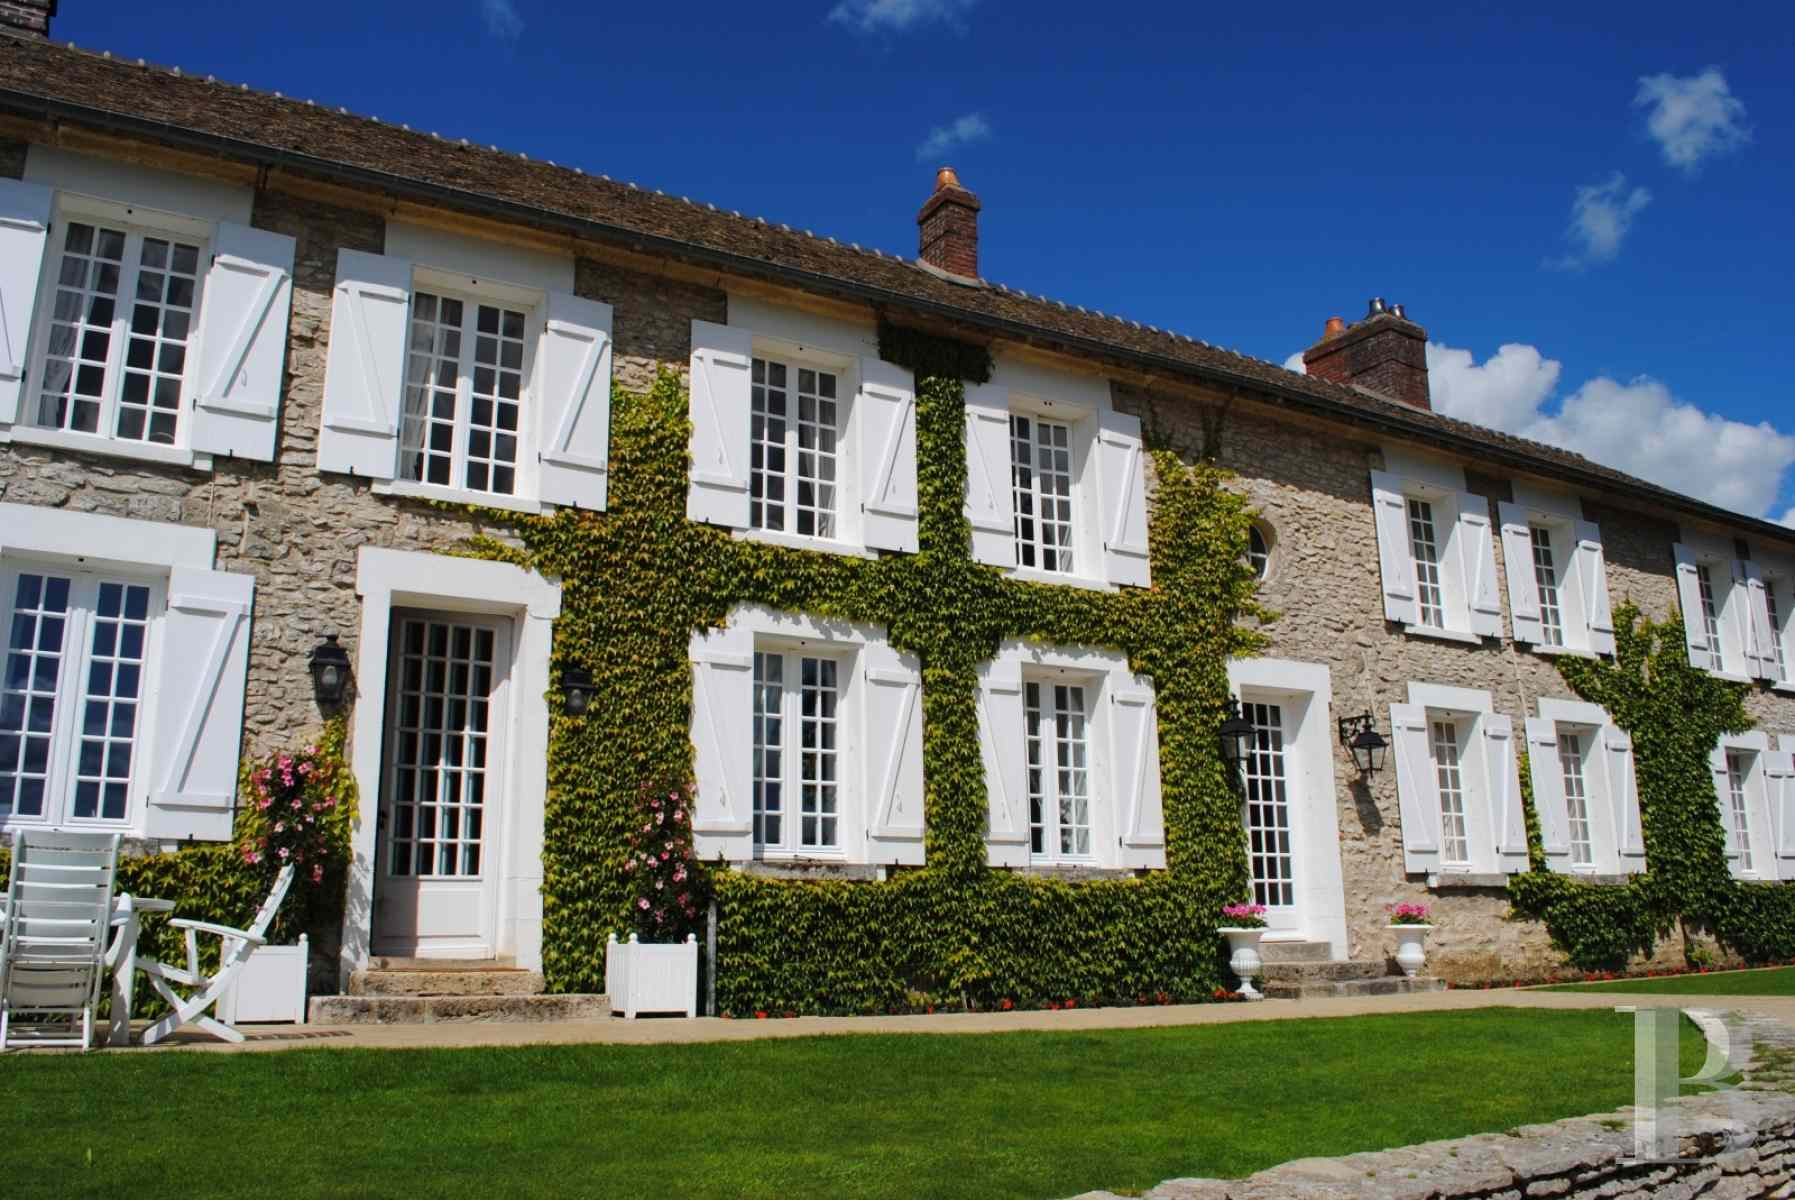 french farms for sale picardy vexin seigneurial - 2 zoom